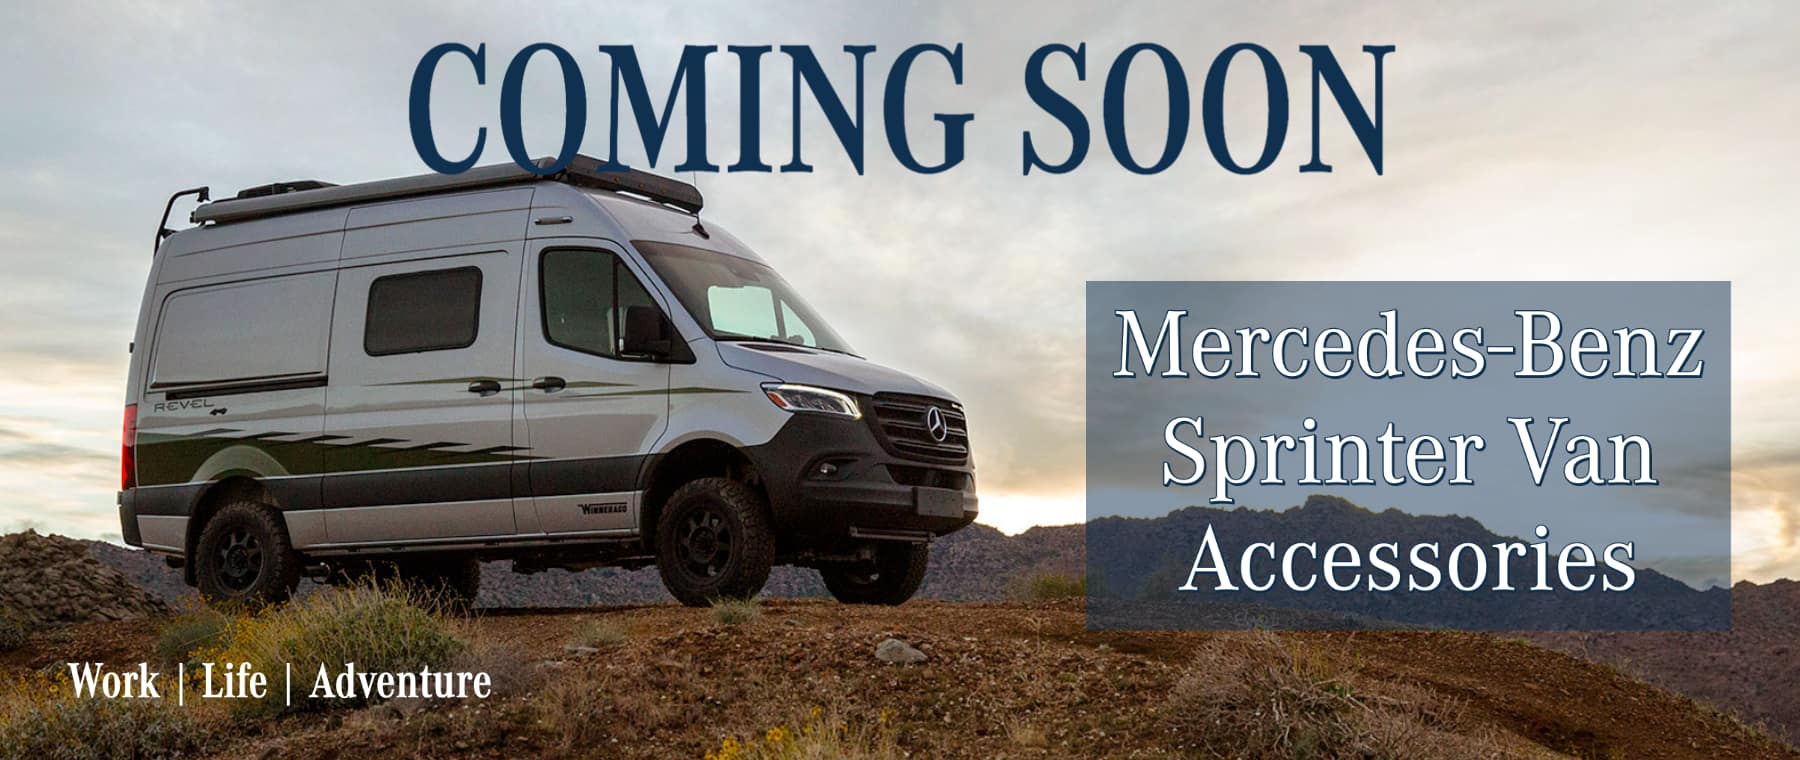 Coming Soon Sprinter Accessories